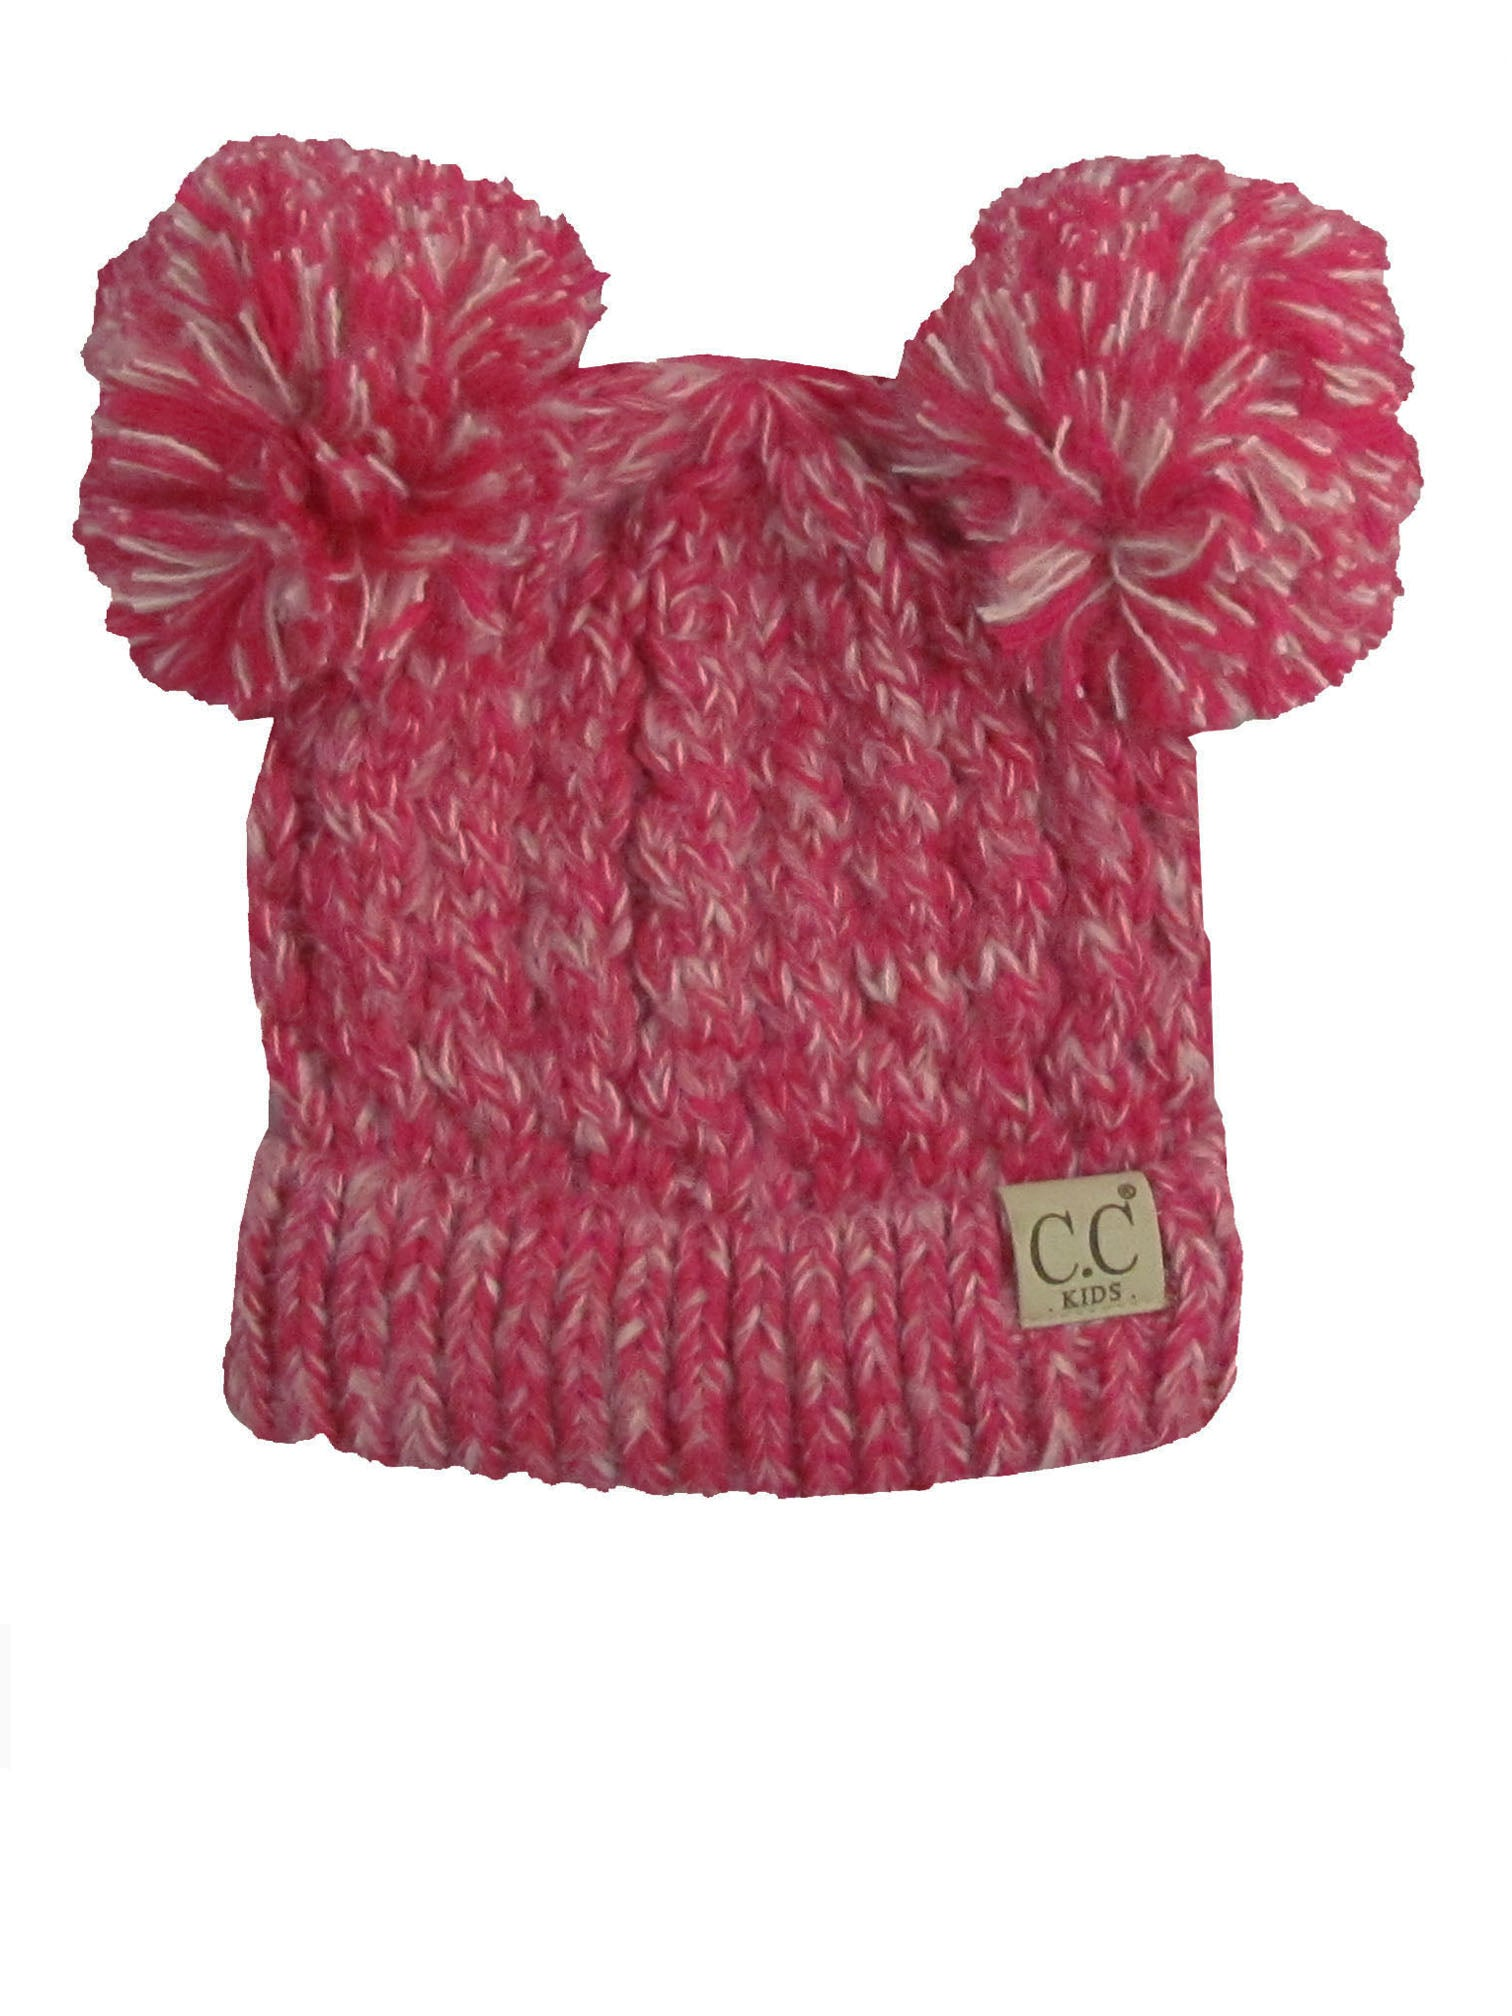 C.C Kid-23 Hot Pink Youth Beanie